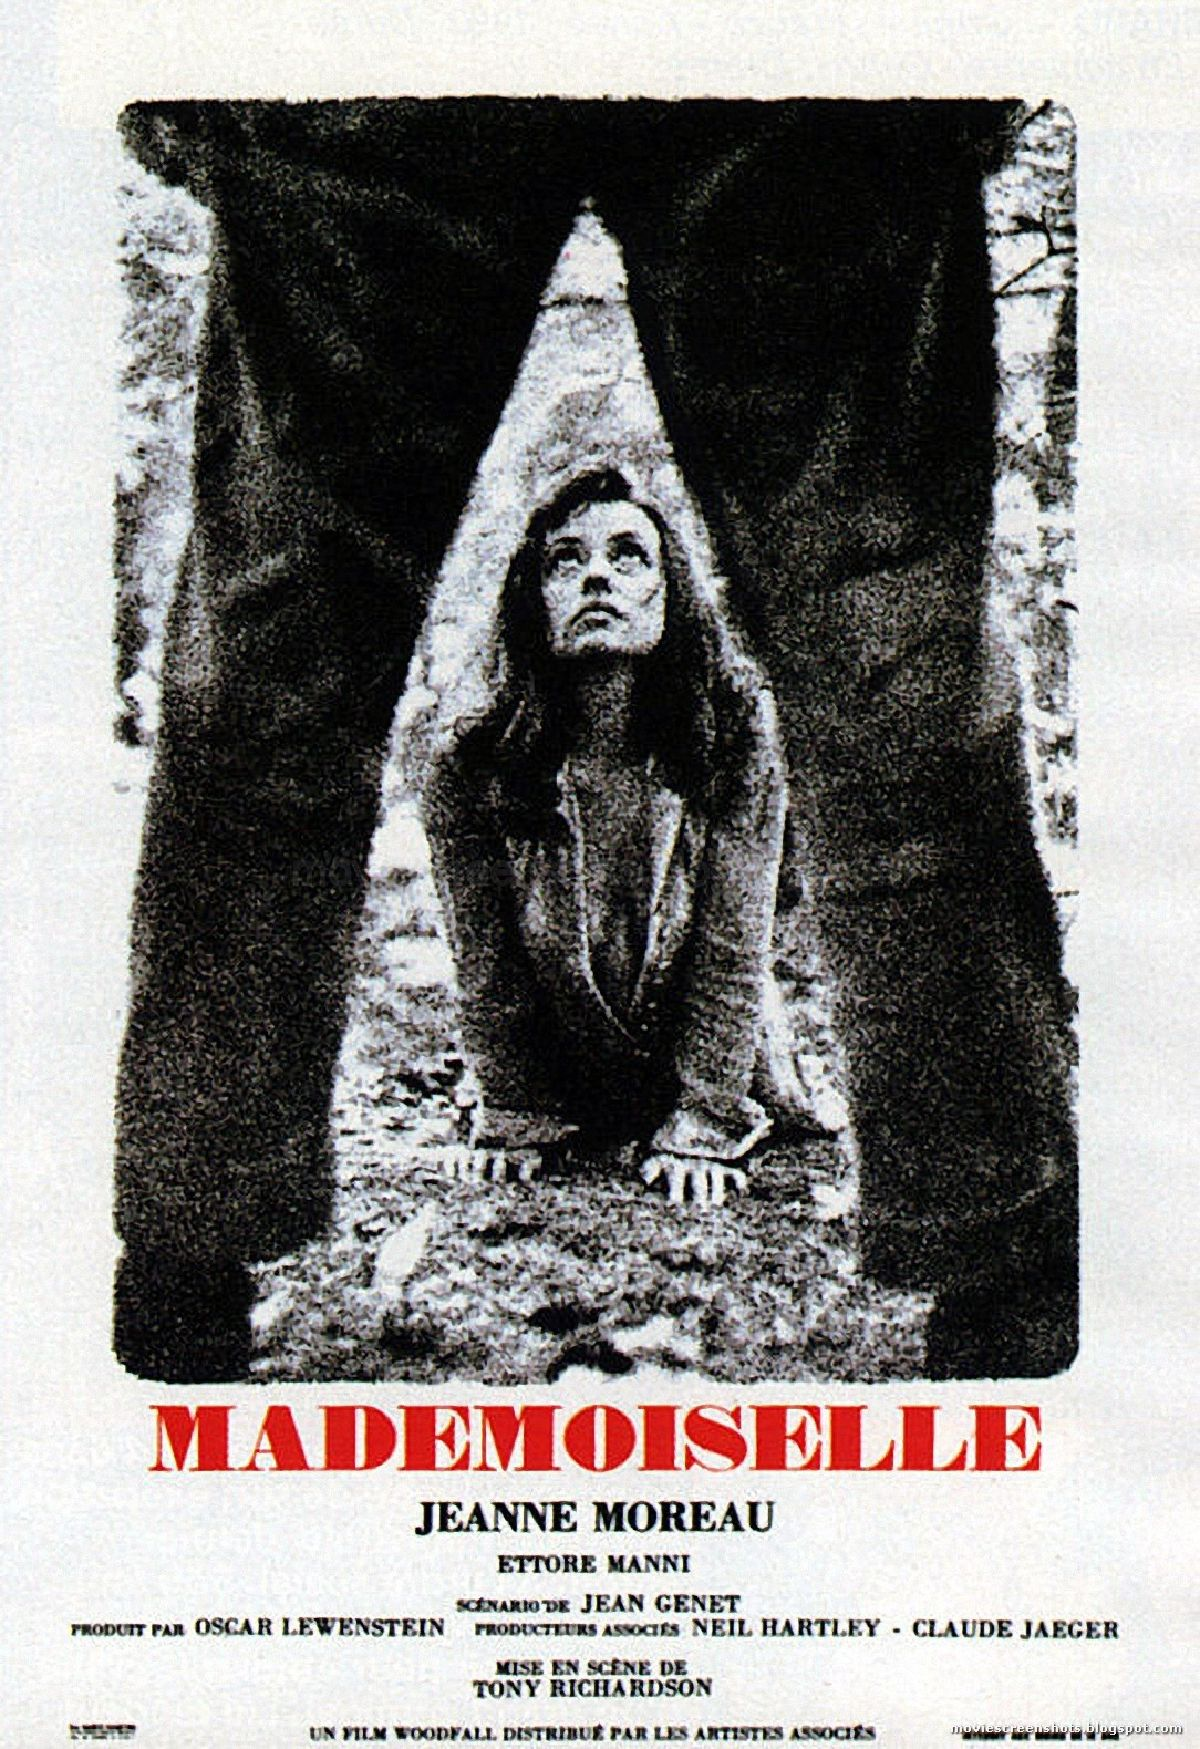 'Mademoiselle (Summer Fires)' movie poster